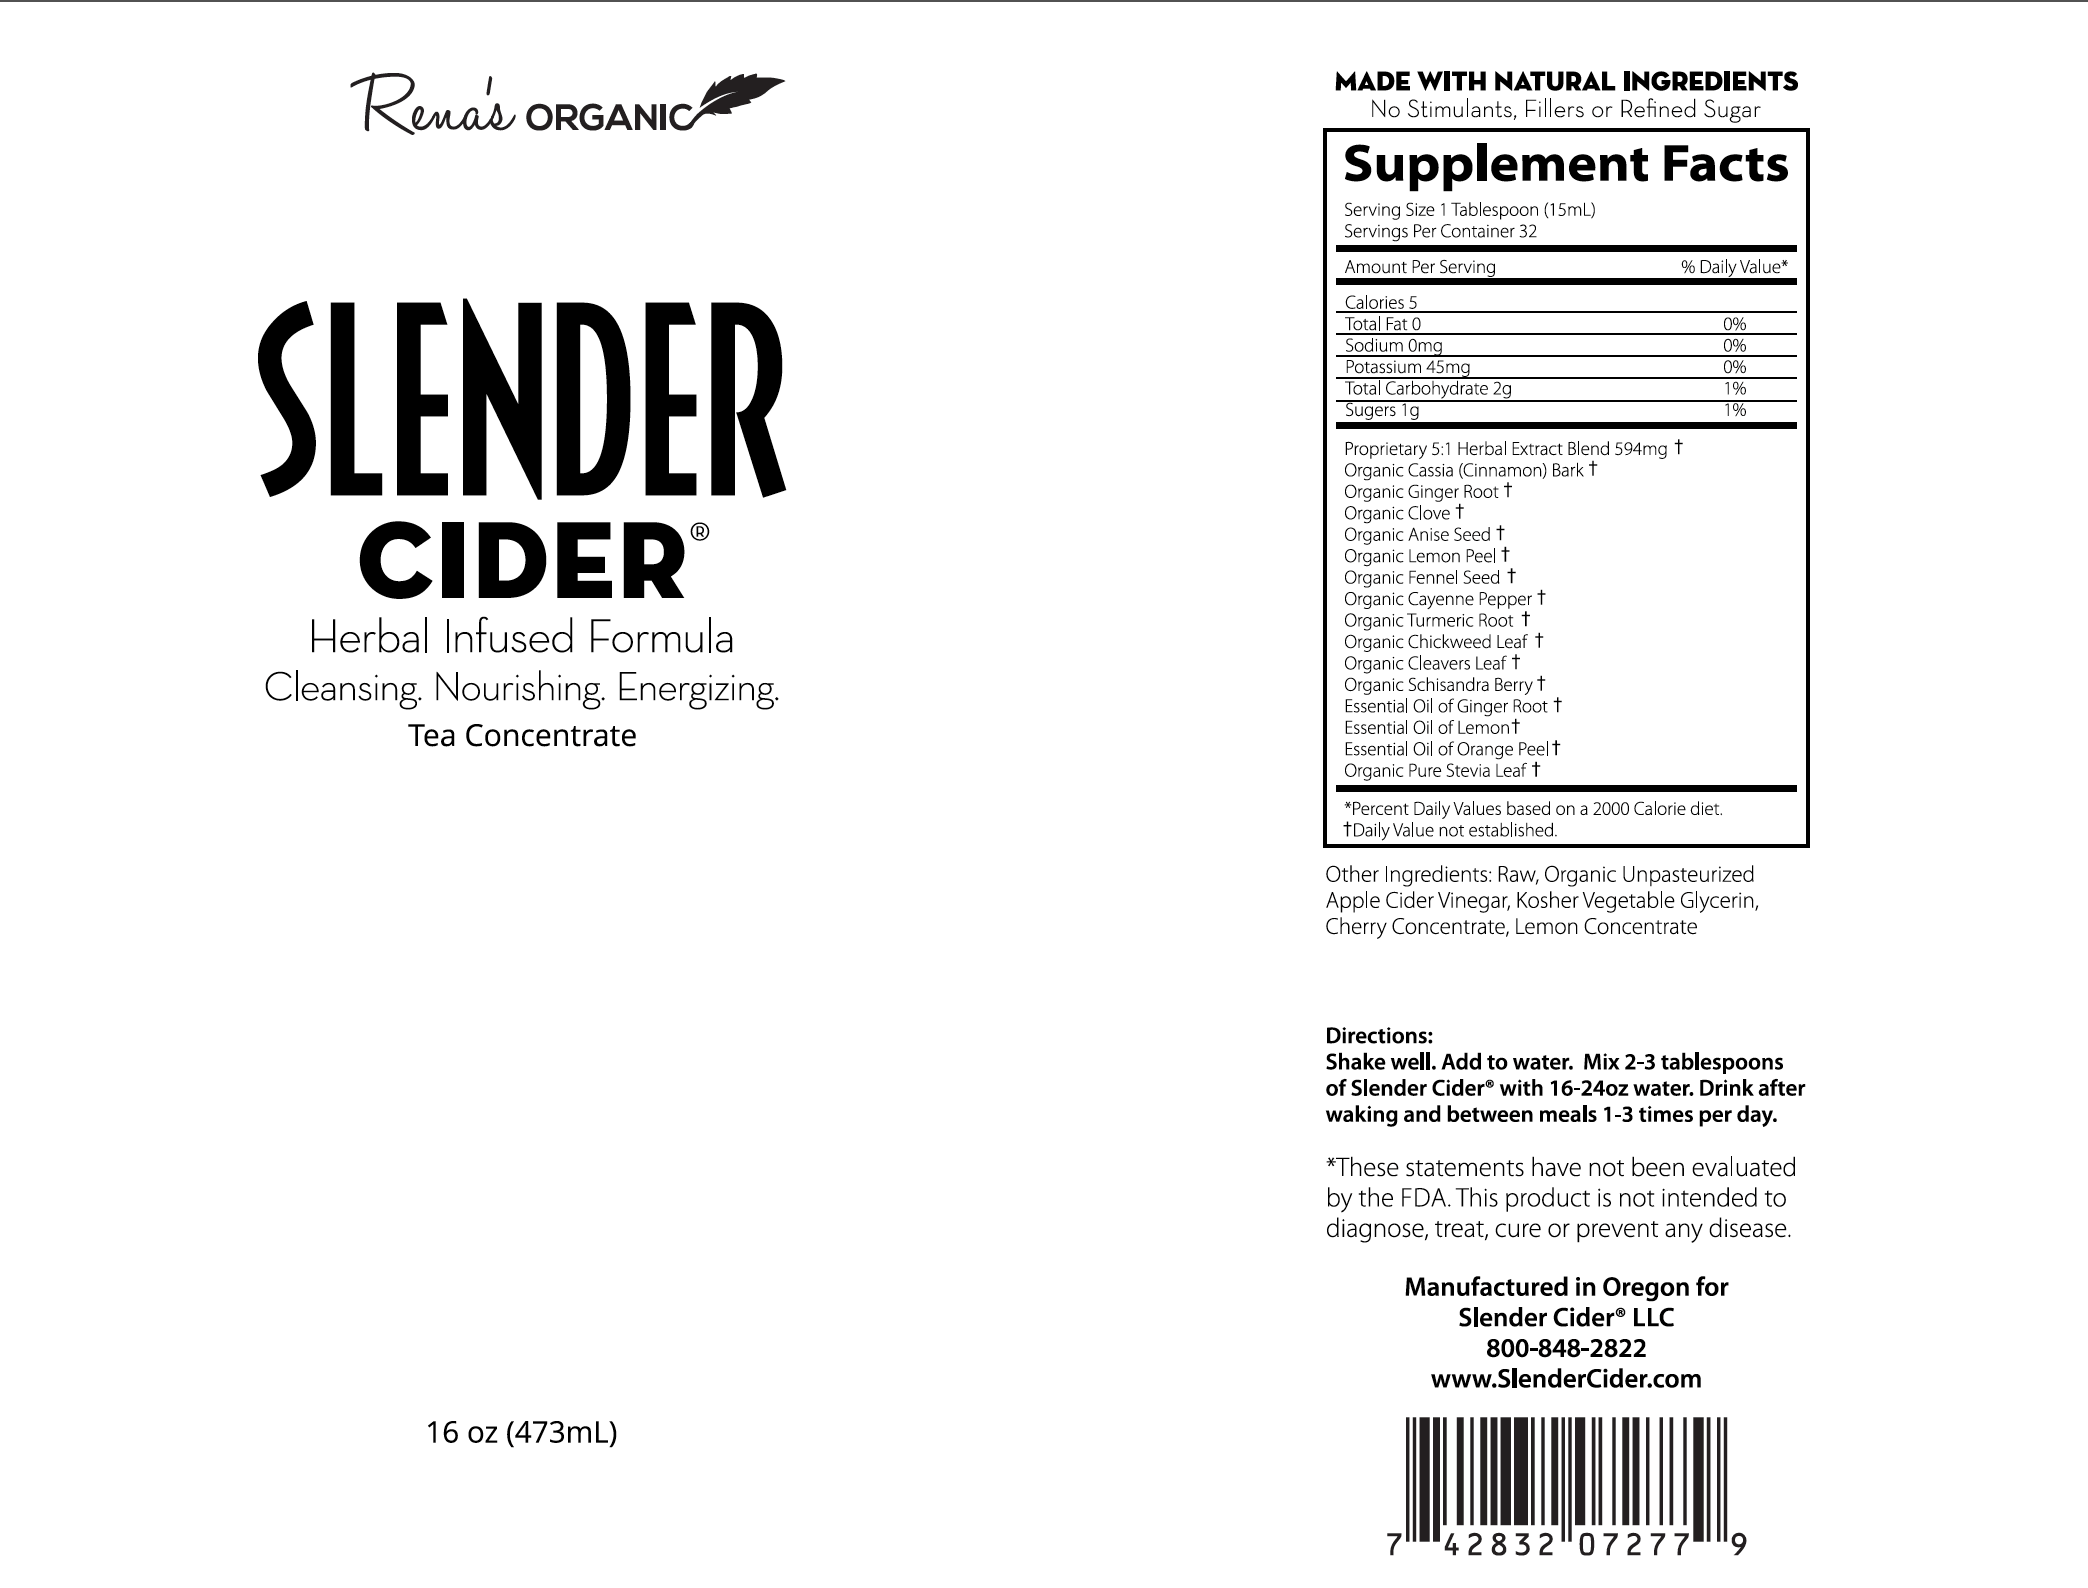 Slender Cider 16 oz label